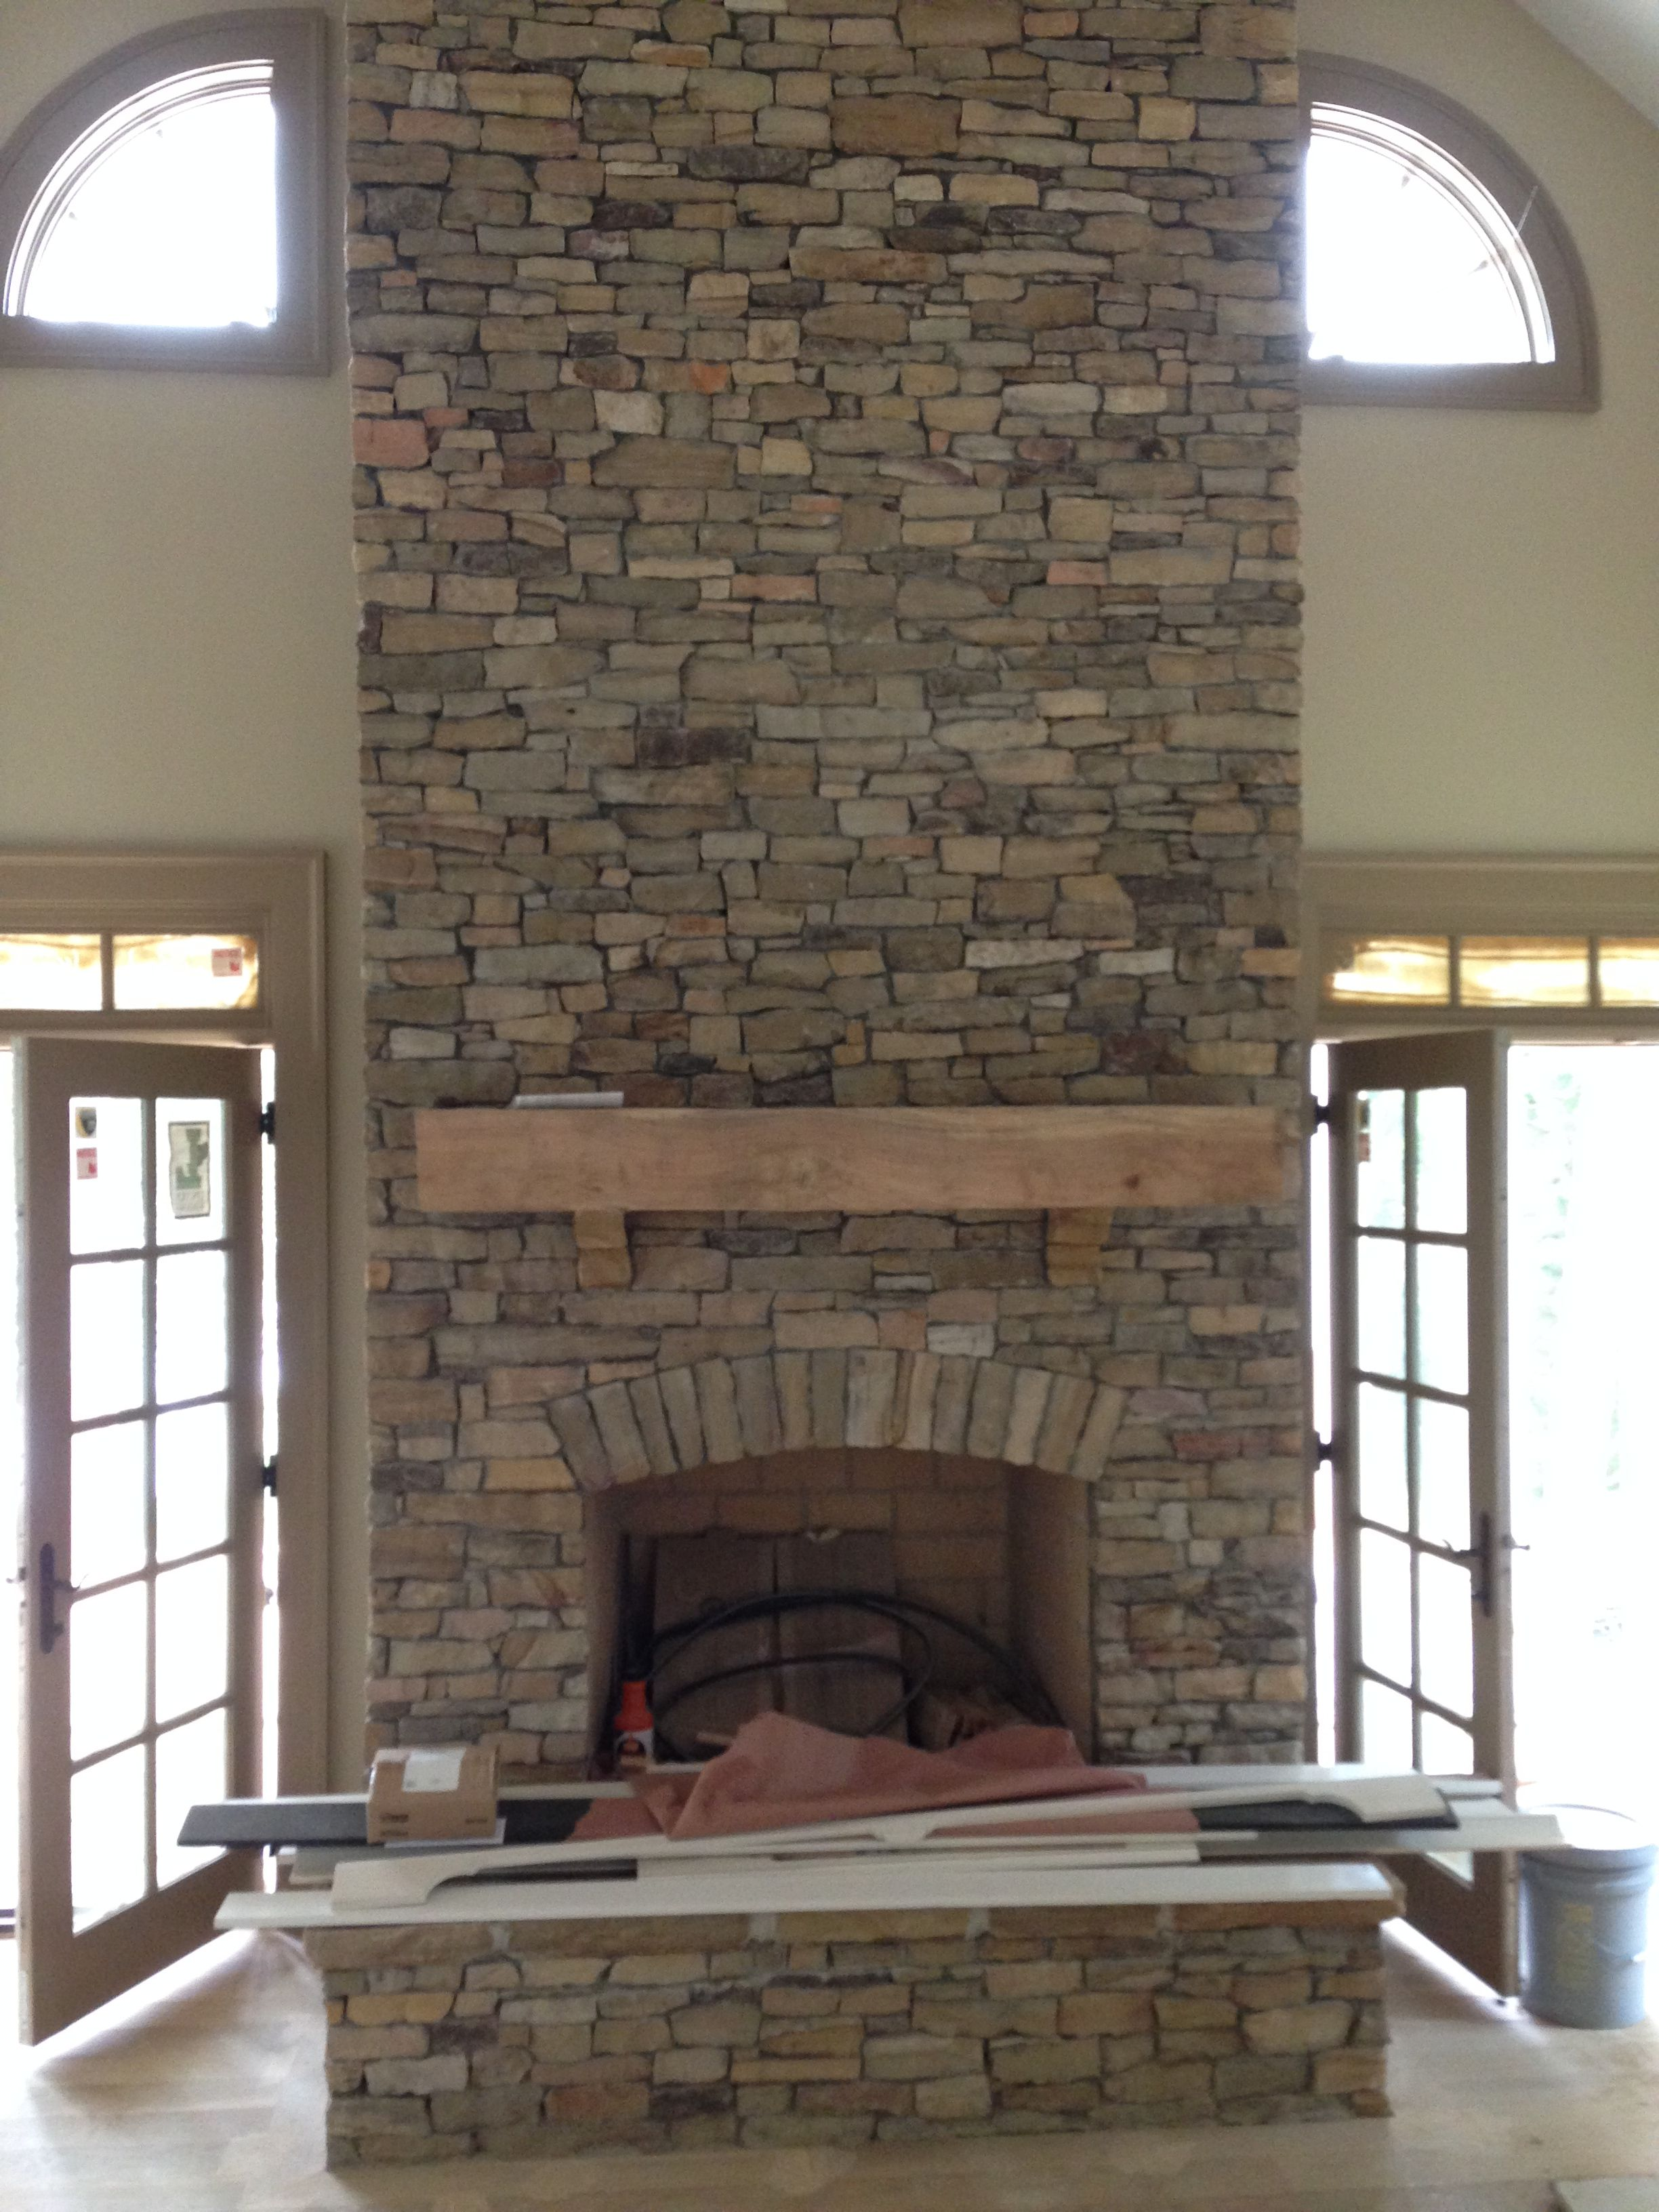 Porch and Stone veneer fireplace